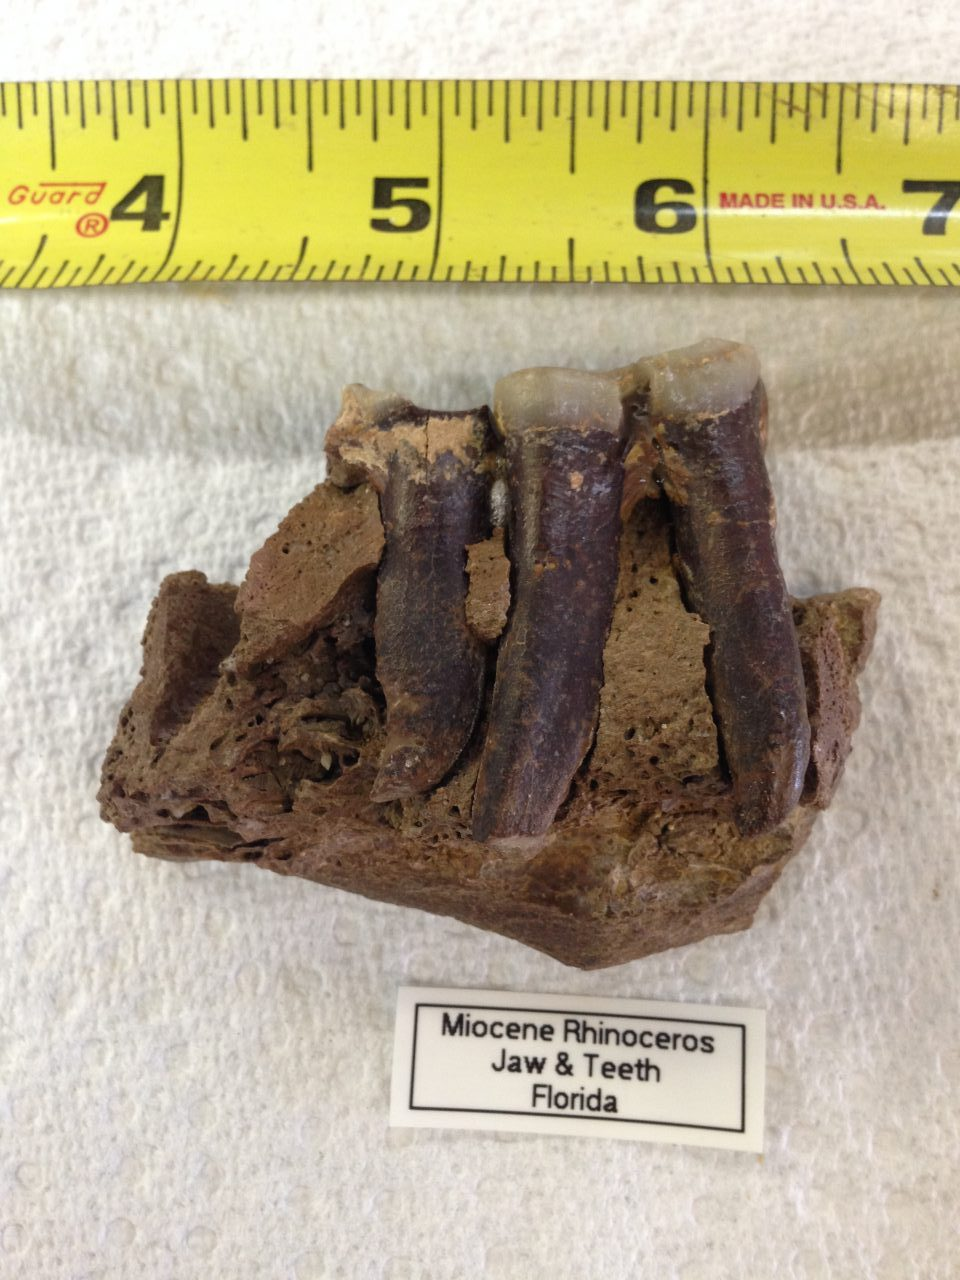 Rhinoceros Jaw Section with 1 1/2 Teeth Menoceras from very Animal from Florida   Fossils & Artifacts for Sale   Paleo Enterprises   Fossils & Artifacts for Sale